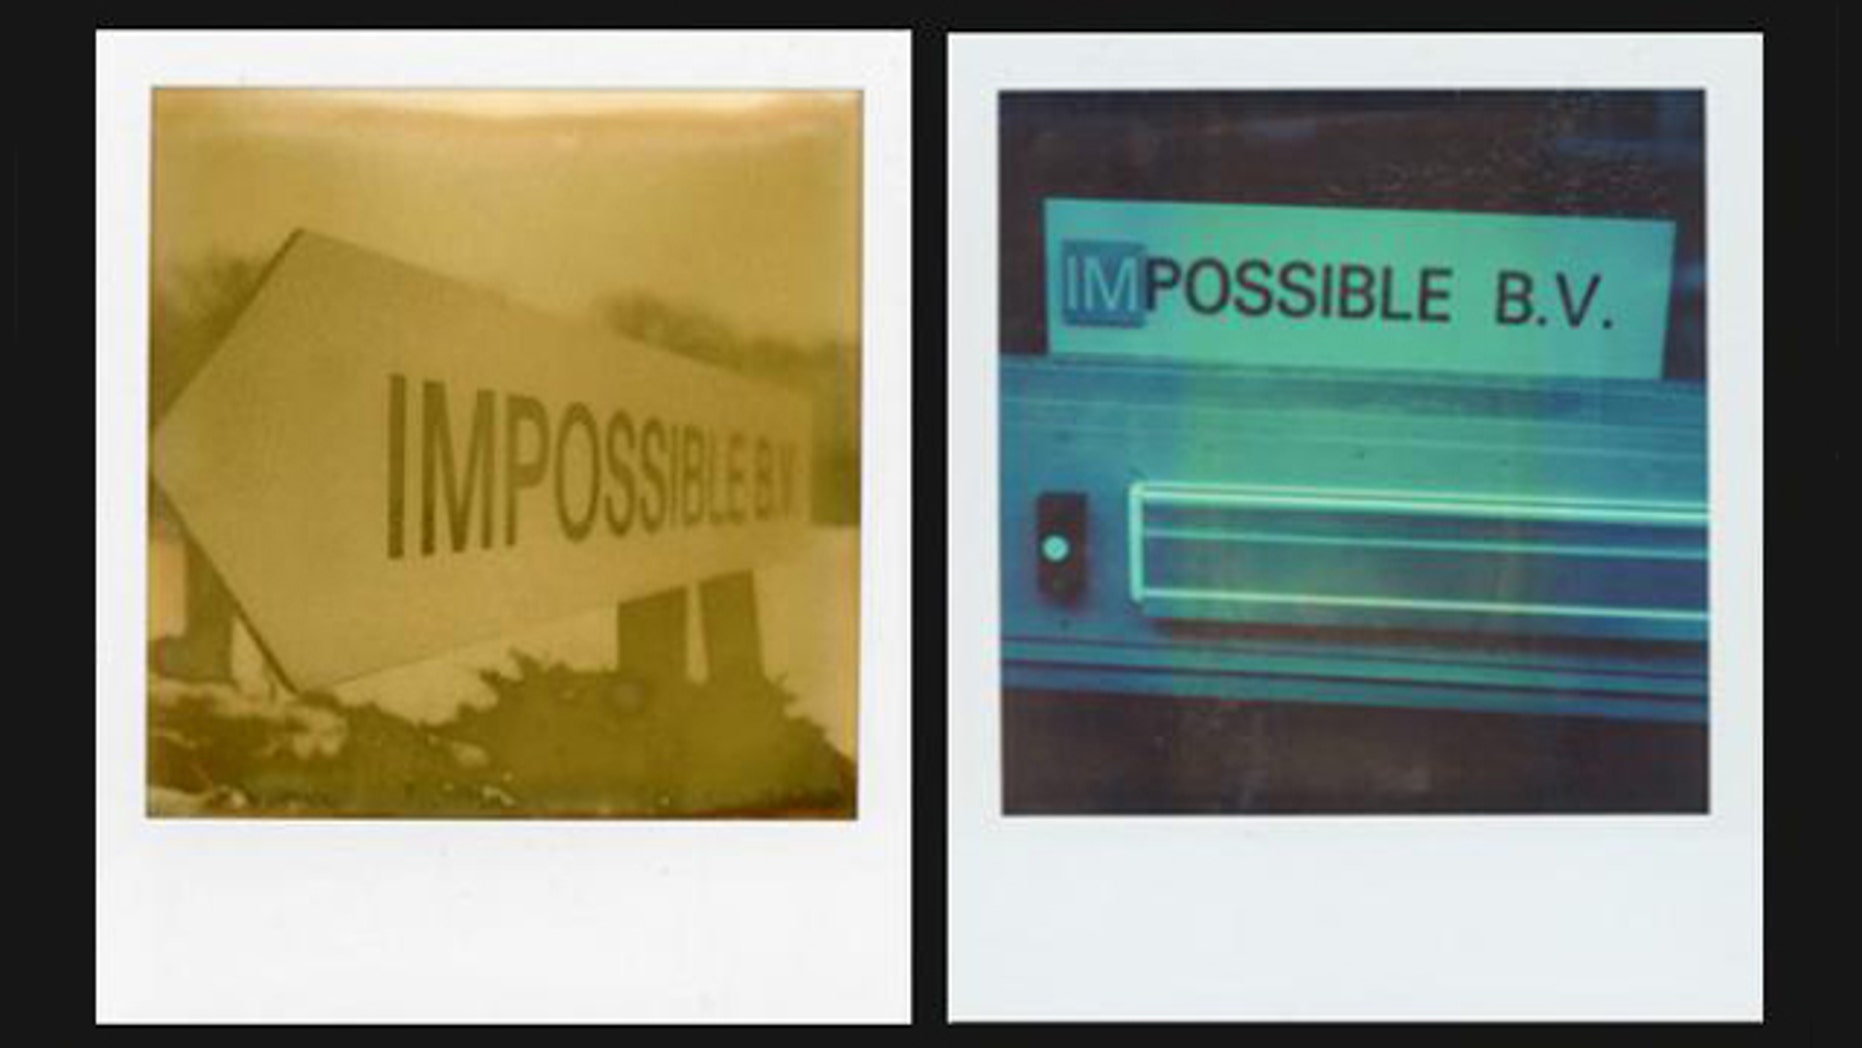 Images on the Web site of the Impossible Project, which is manufacturing Polaroid instant film again, are depicted as old instant photographs.